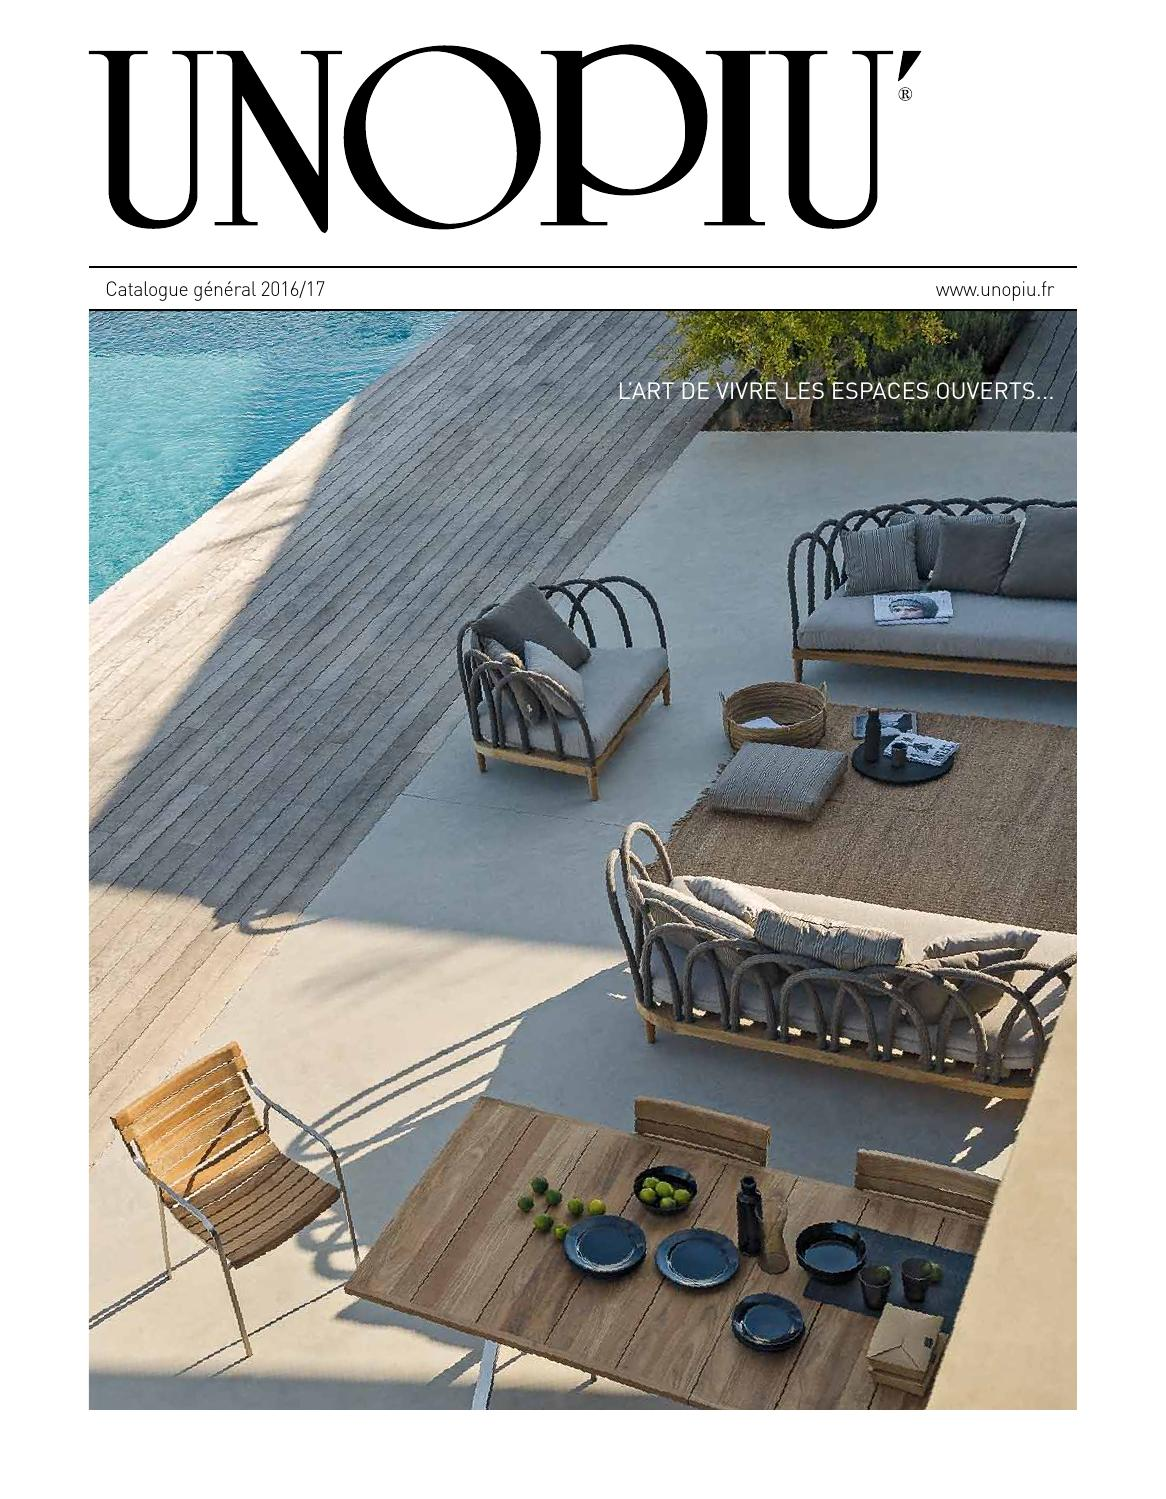 Applique Exterieur Unopiu Catalogue General Unopiù 2016 By Unopiù Spa Issuu